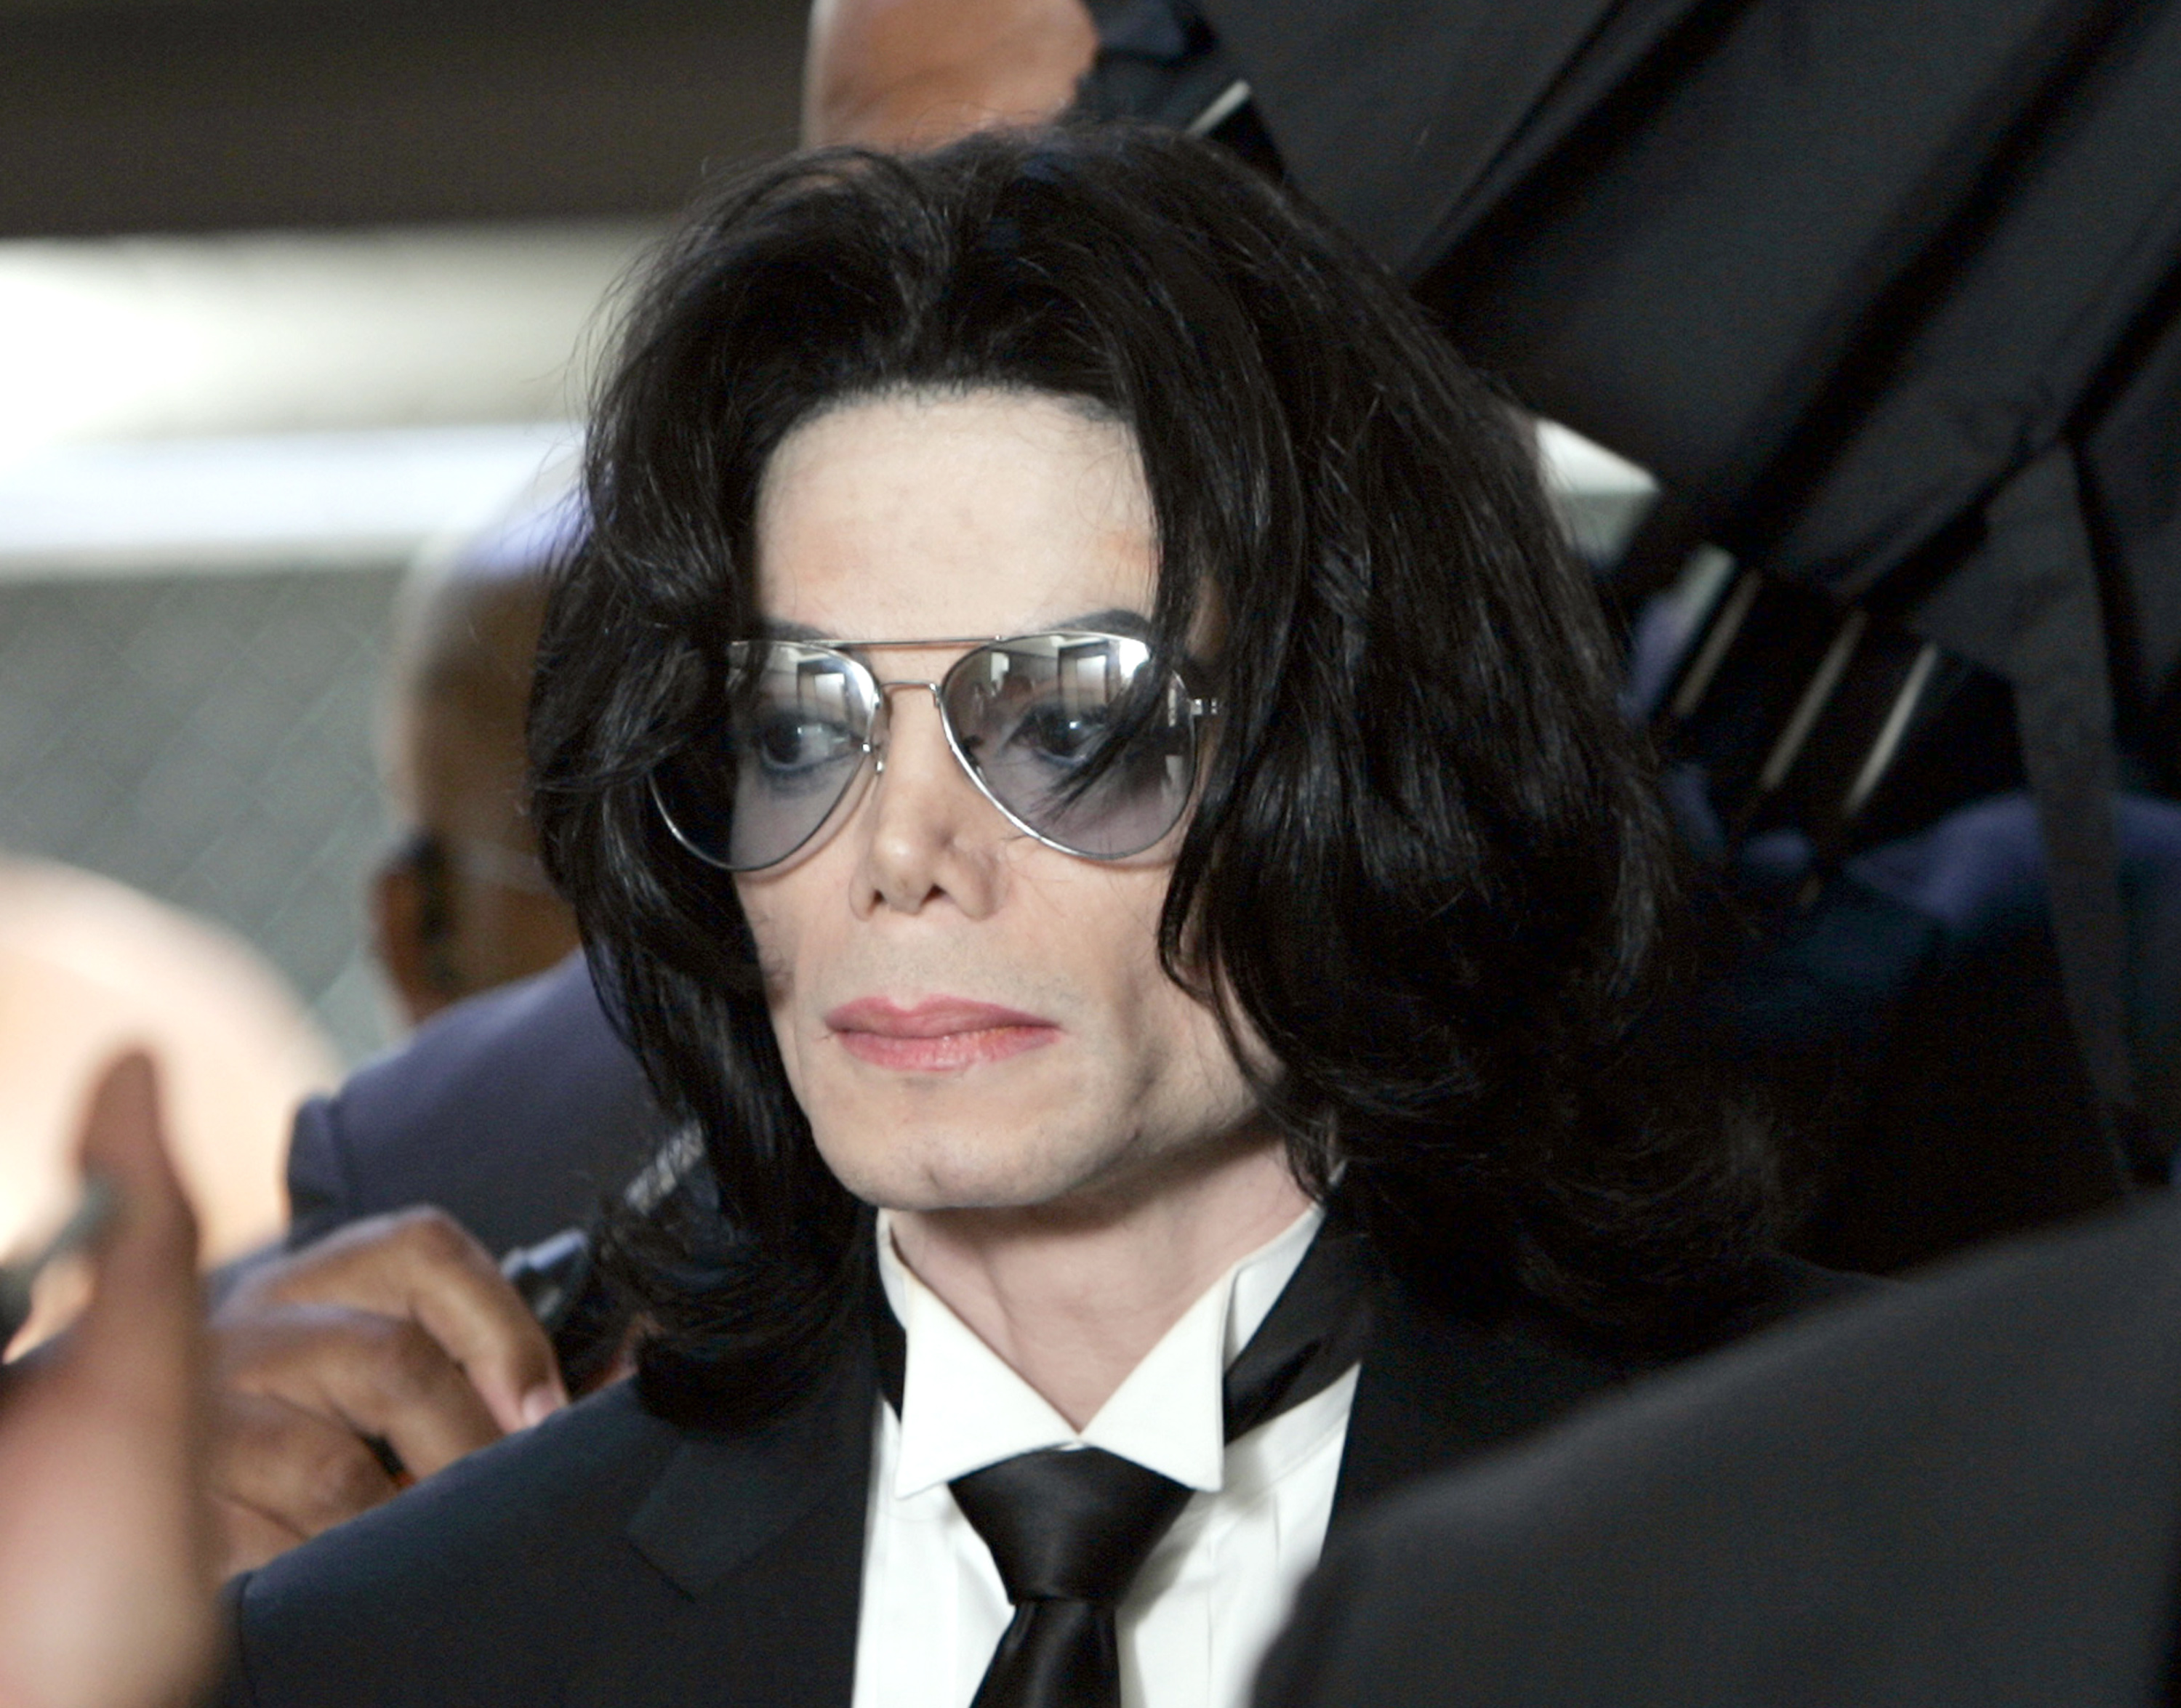 The Jacksons say Michael's 'naivety was his downfall' as they discuss Leaving Neverland documentary for the first time